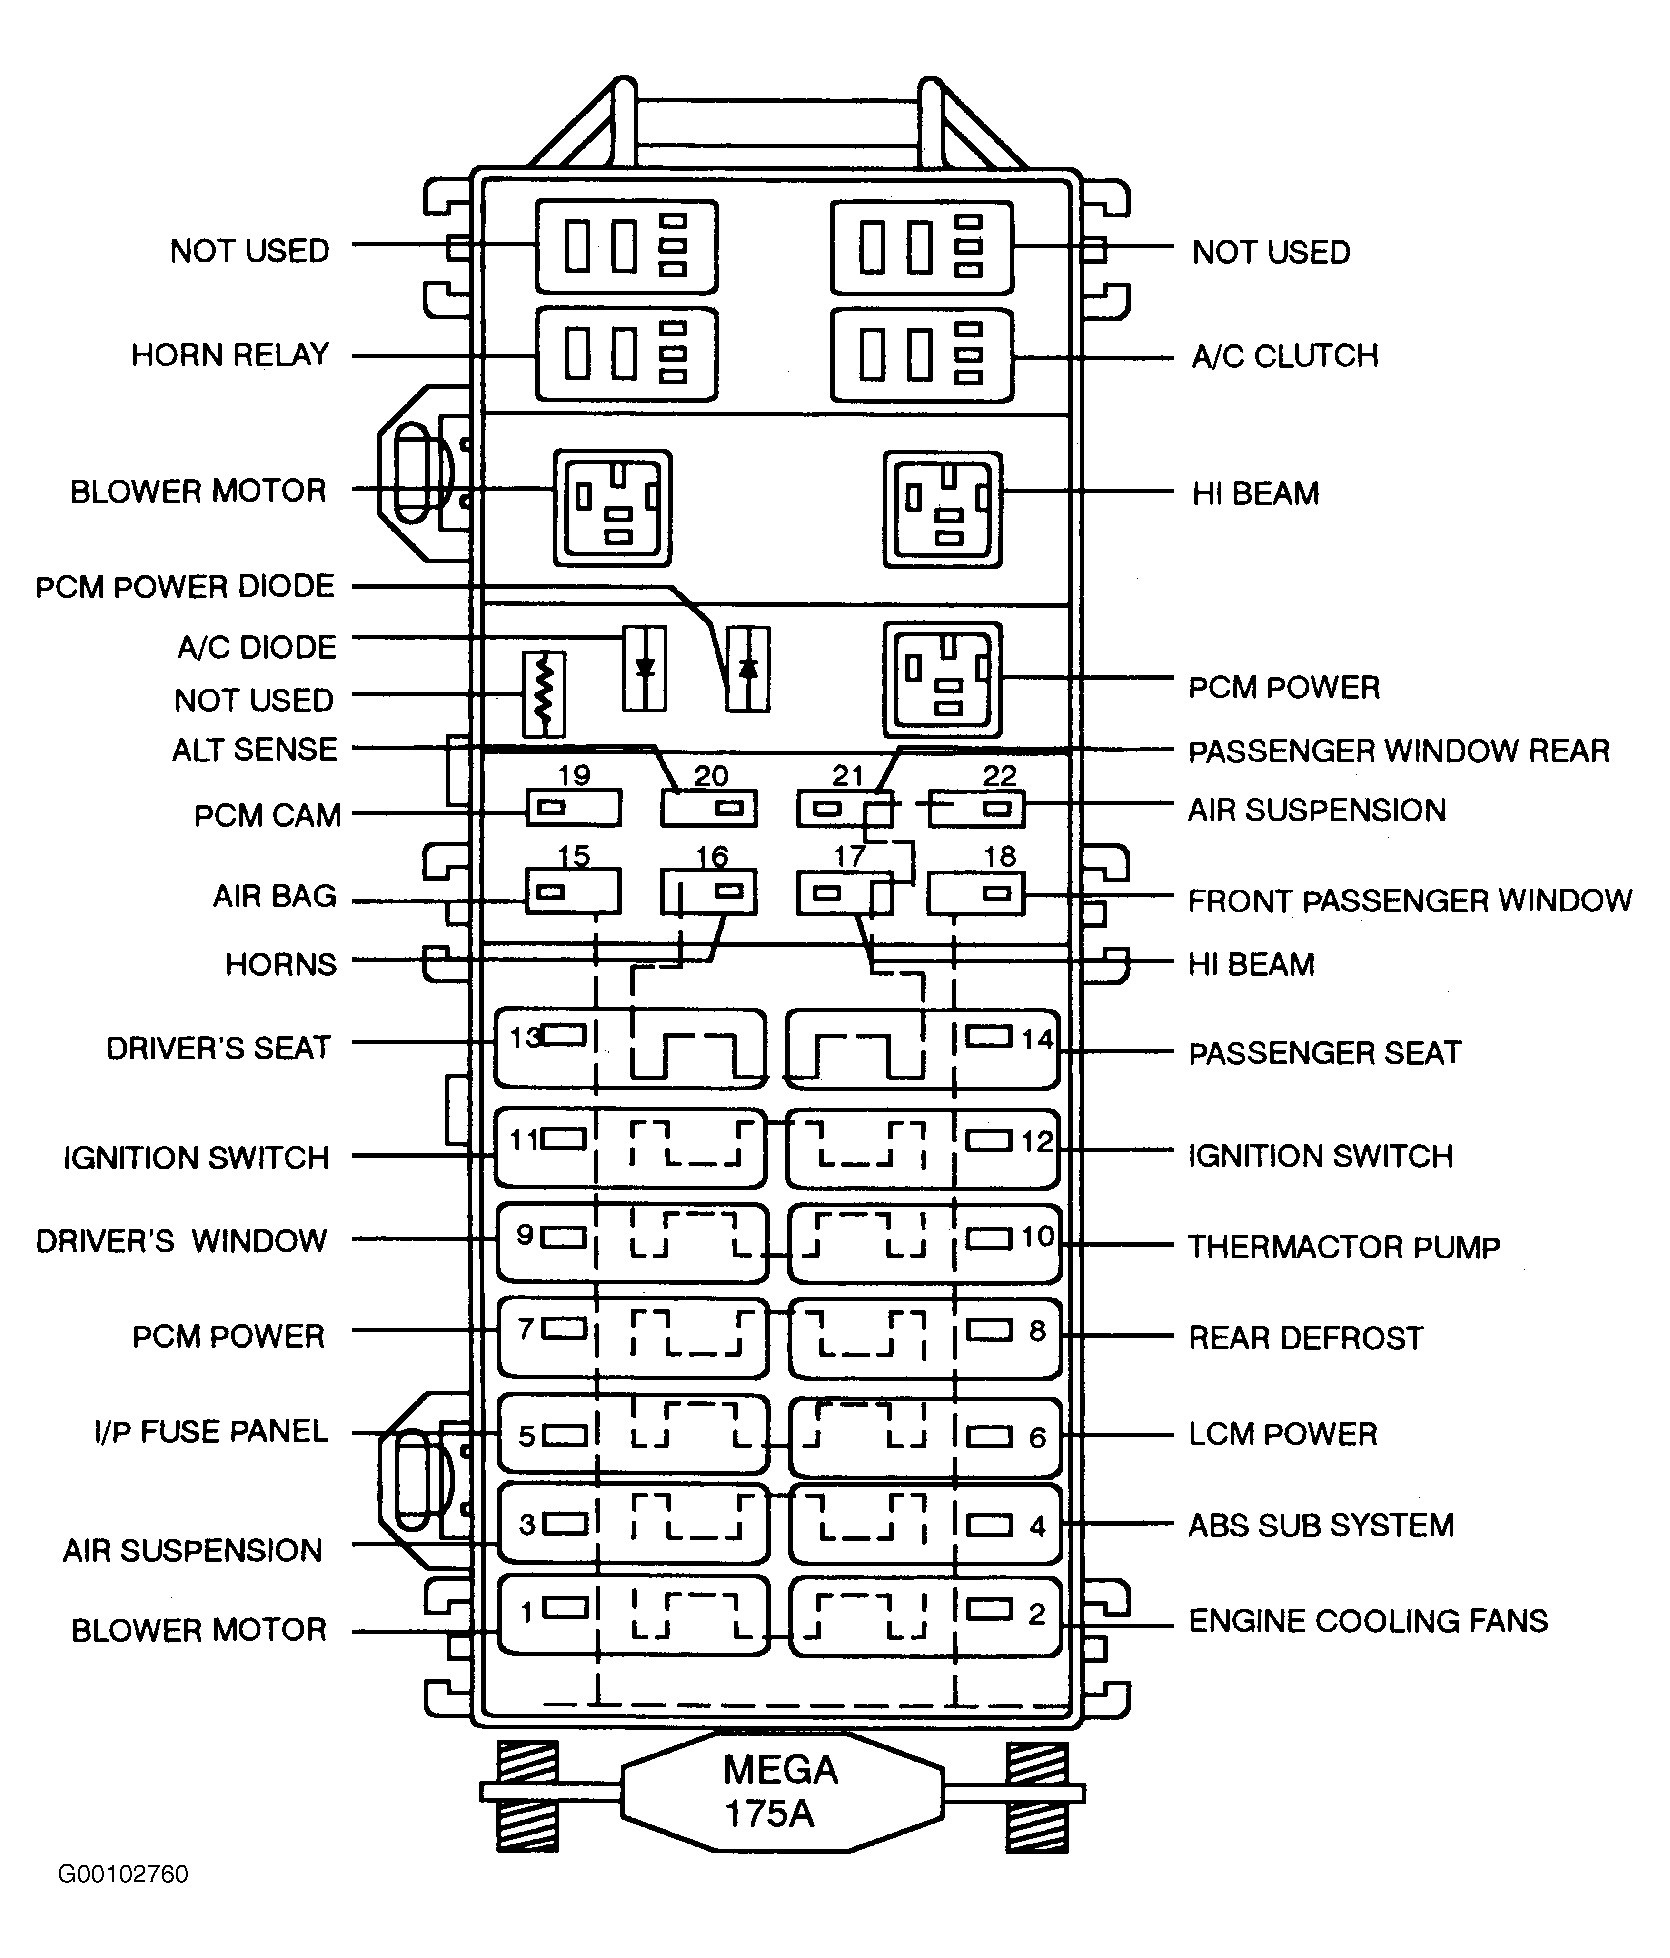 hight resolution of 02 lincoln town car manual for fuse box schema diagram database smart car fuse box layout